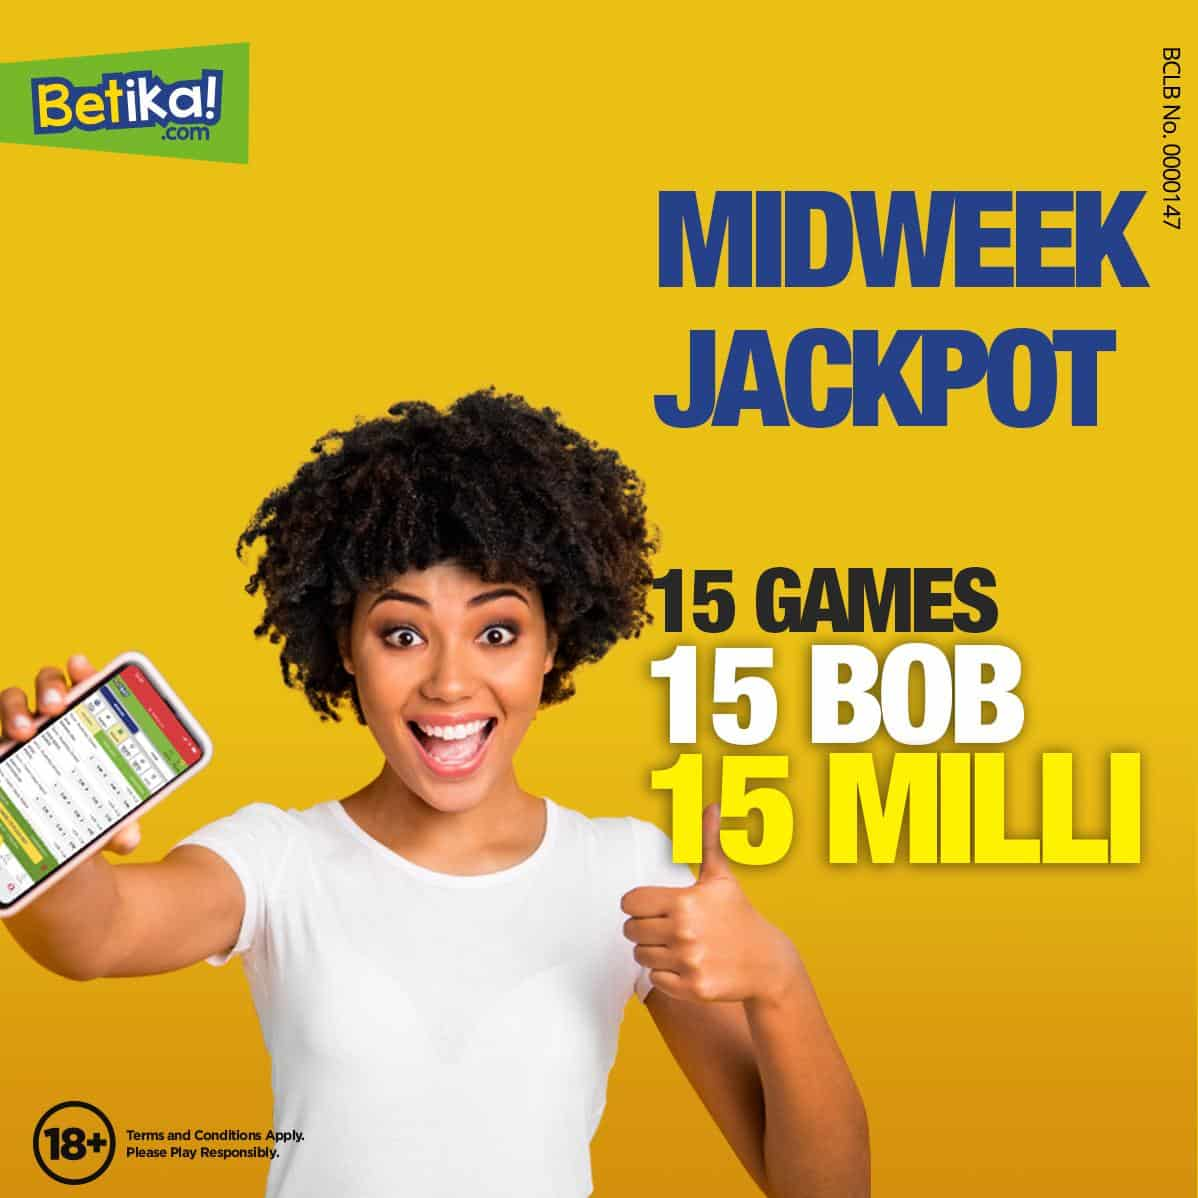 3rd March Betika Midweek Jackpot Predictions